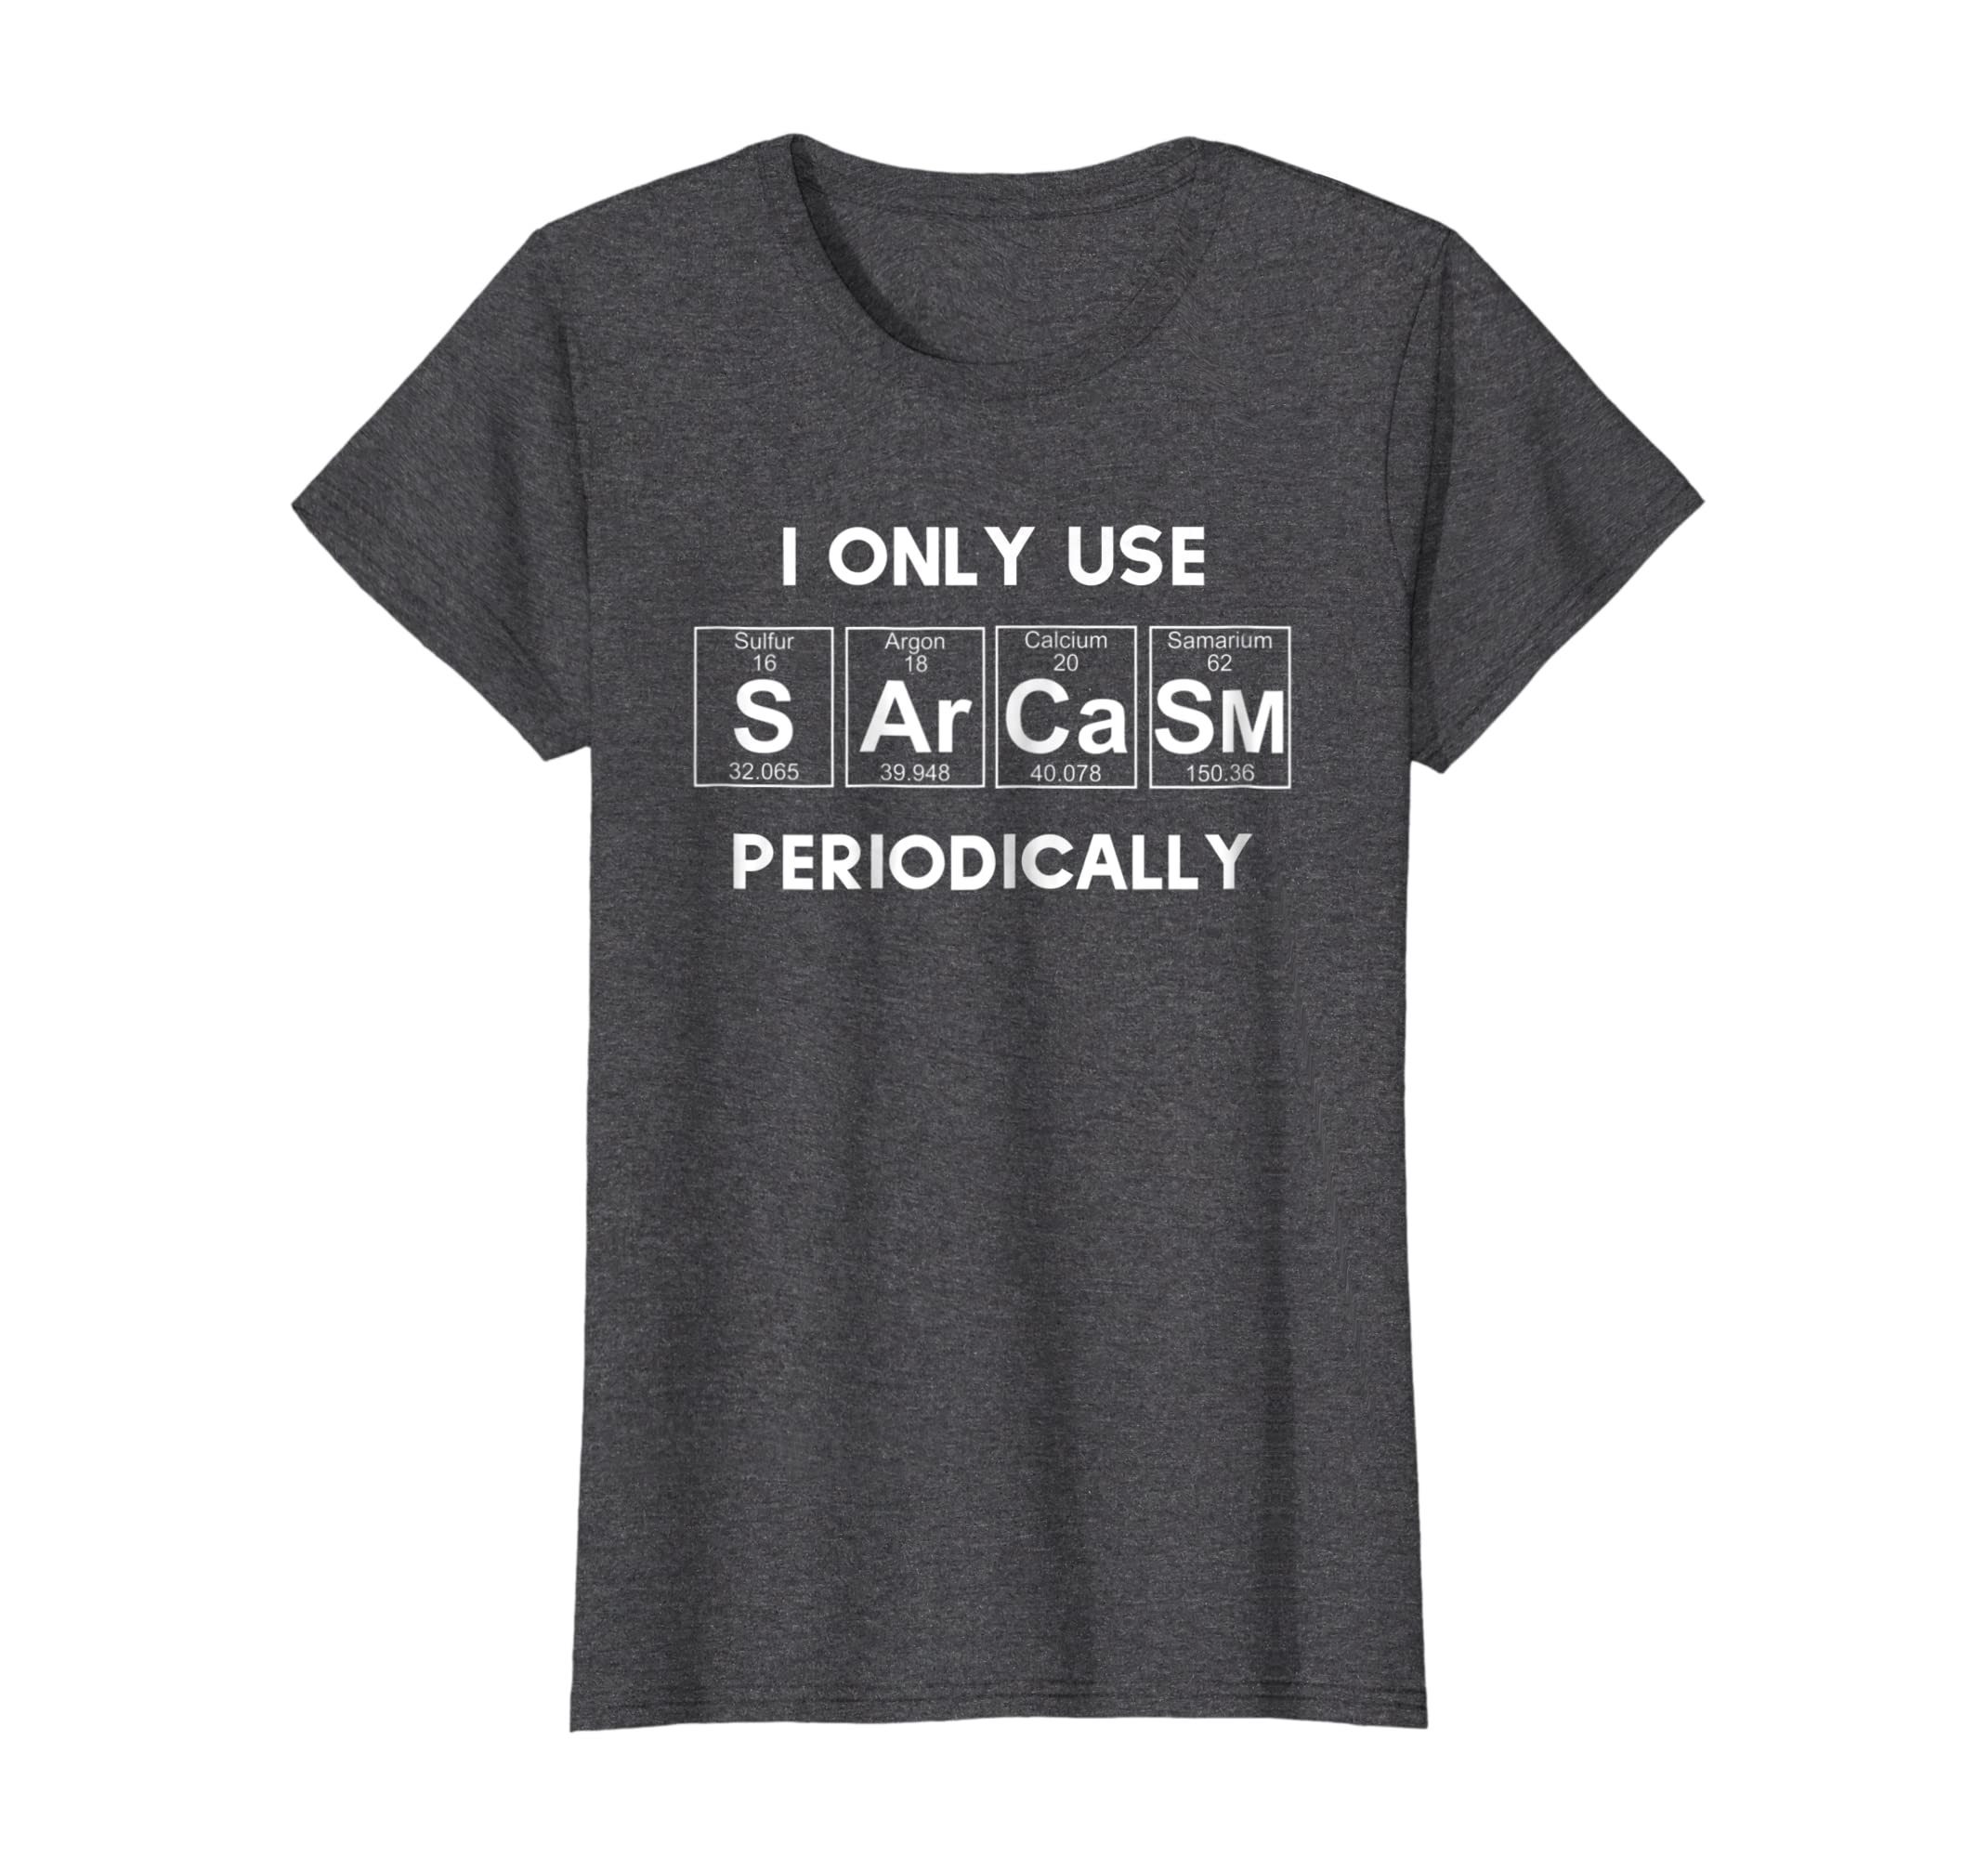 Sarcasm Funny Shirt Tee For Women Gift Periodic Table Humor-Yolotee